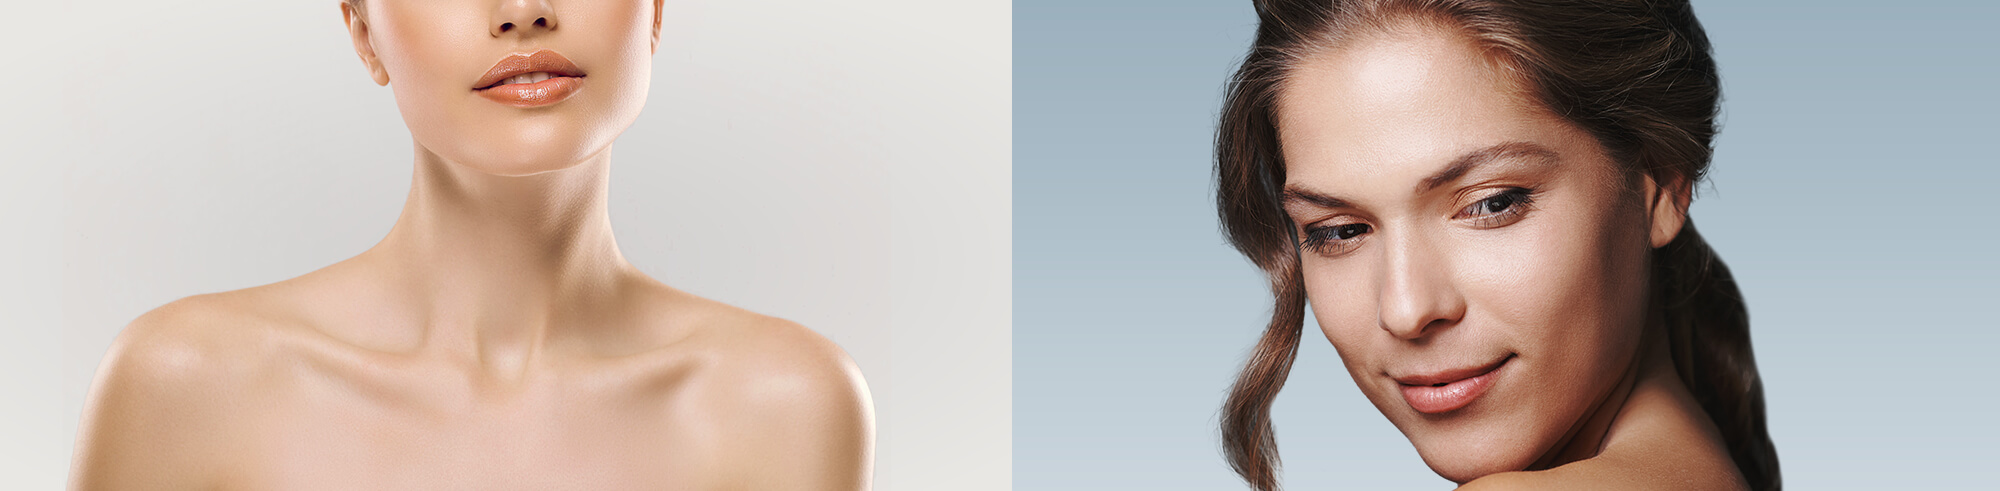 Liposuction And Facial Rejuvenation